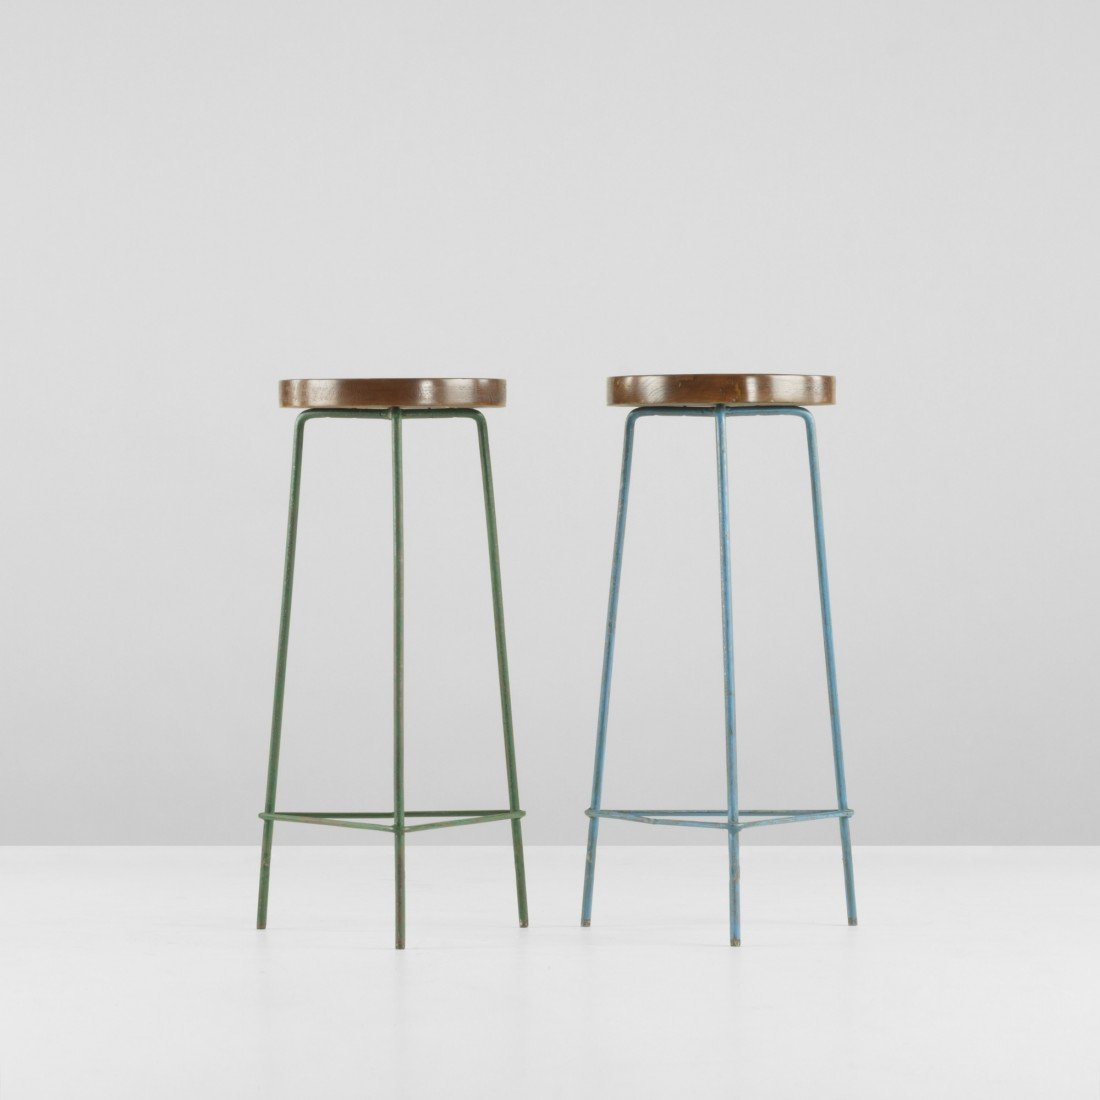 108: Pierre Jeanneret pair of stools